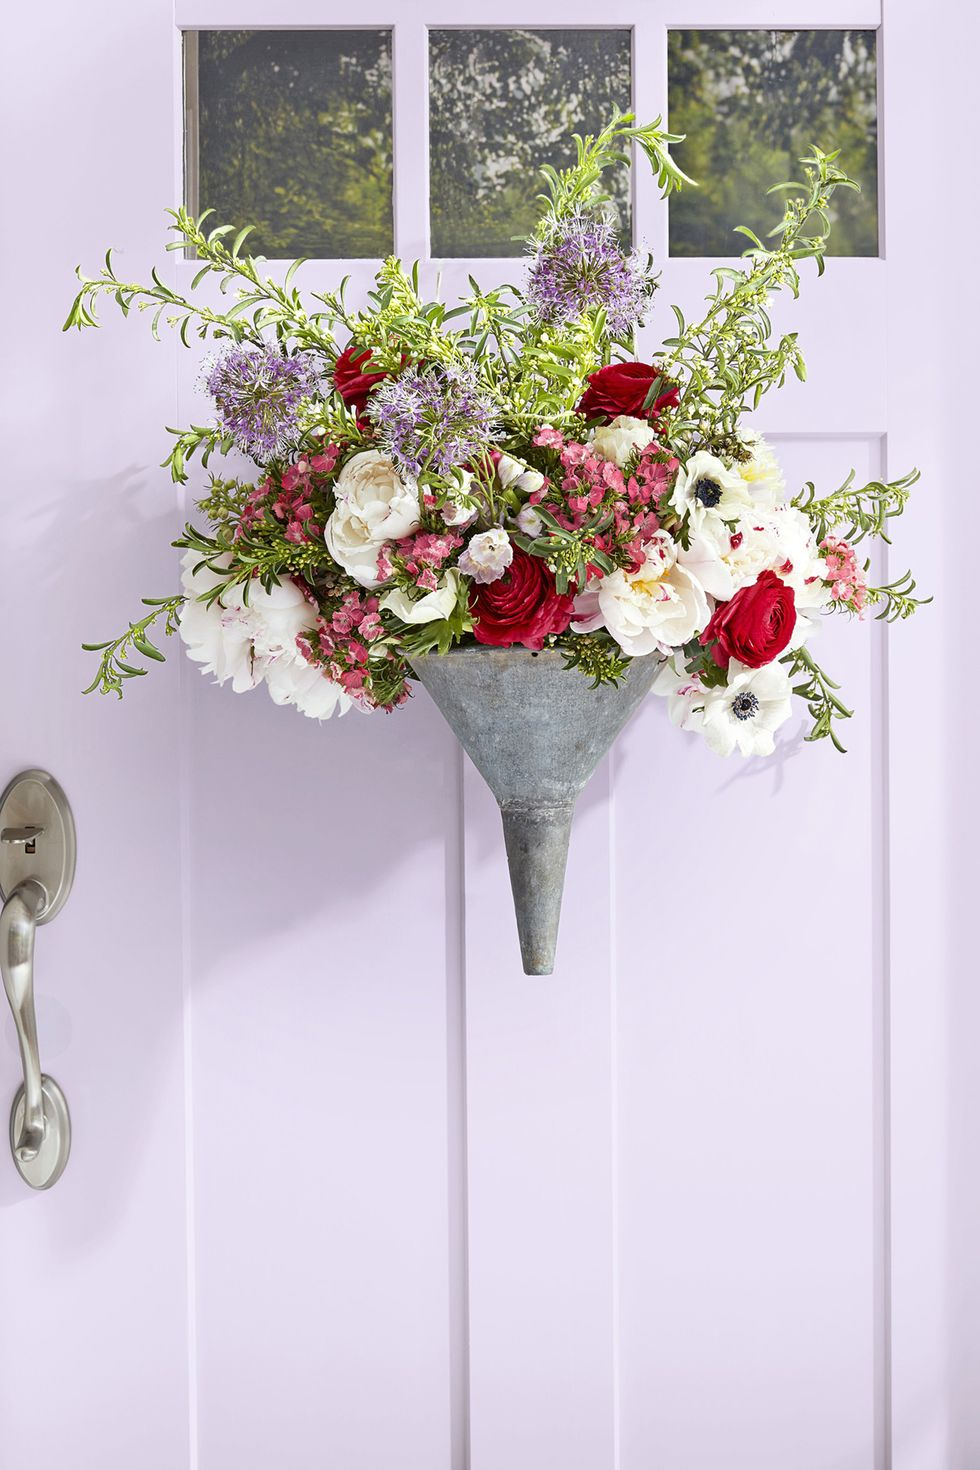 This is an easy but beautiful addition to your door!